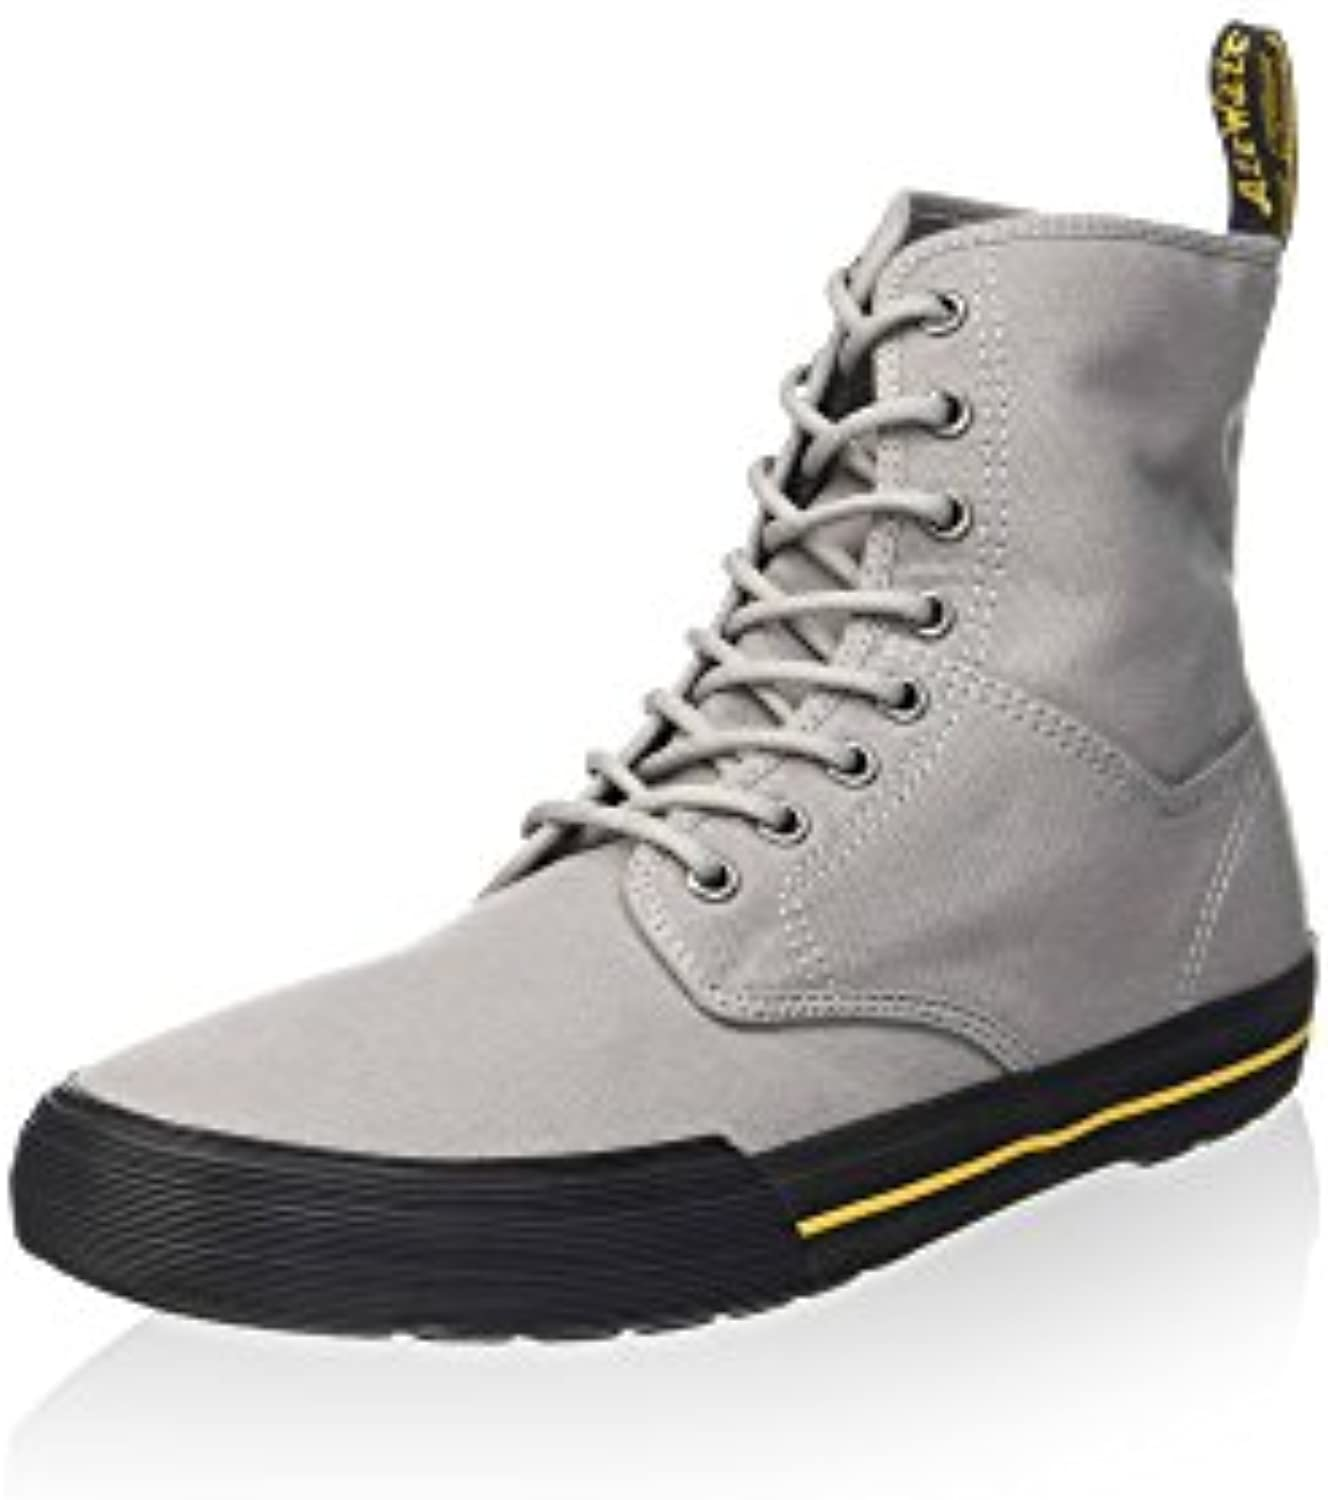 DR.MARTENS HERRENSTIEFEL WINSTED CANVAS/HELLGRAU (44)DR MARTENS HERRENSTIEFEL WINSTED CANVAS HELLGRAU Billig und erschwinglich Im Verkauf